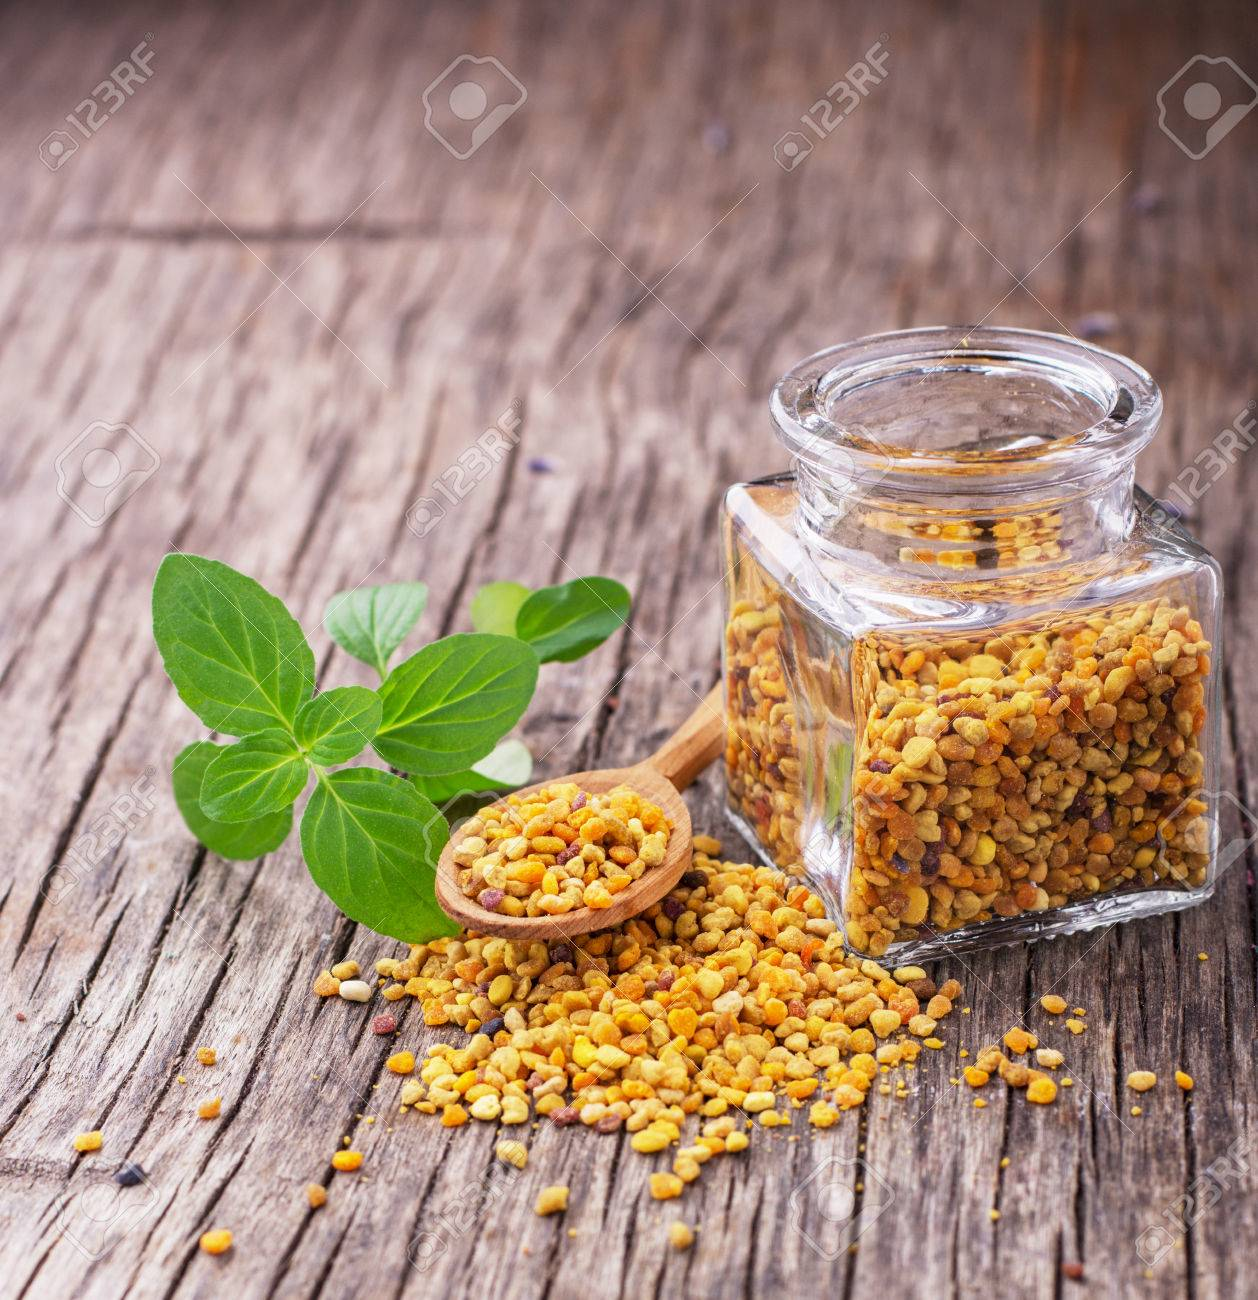 Golden Bee Pollen In Small Glass Jars With Honey Comb On The